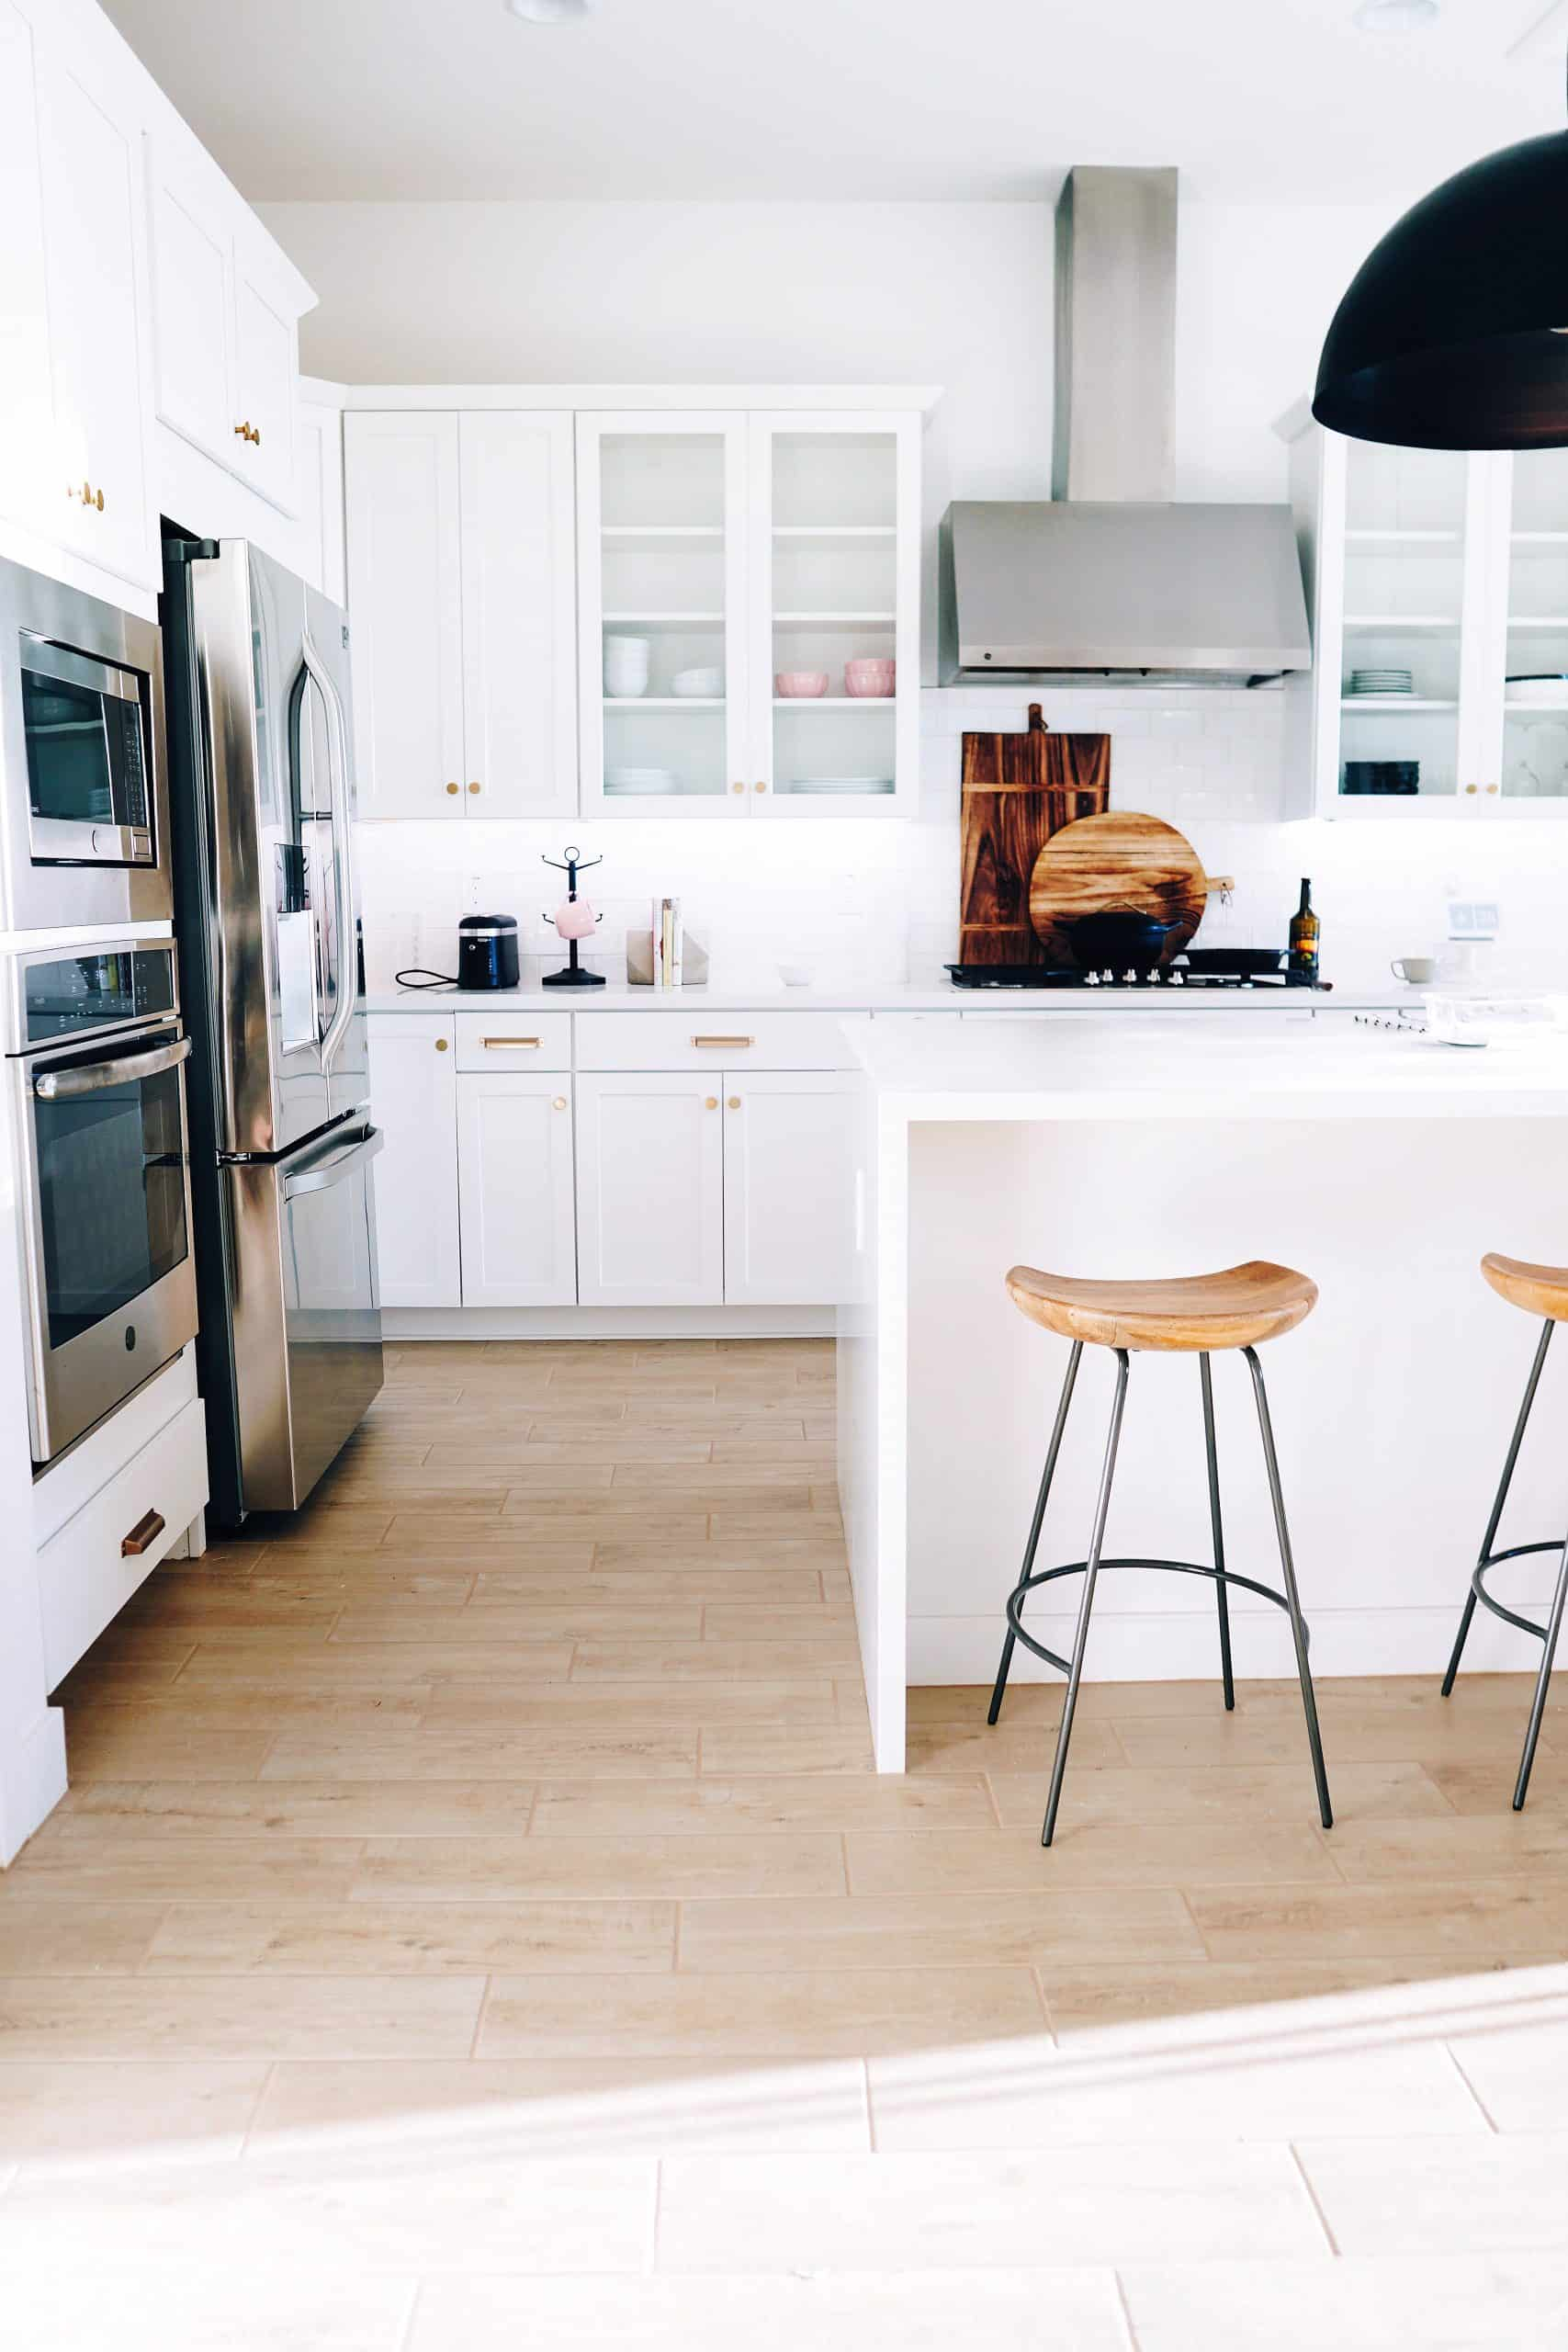 6 Timeless Kitchen Trends That Will Last